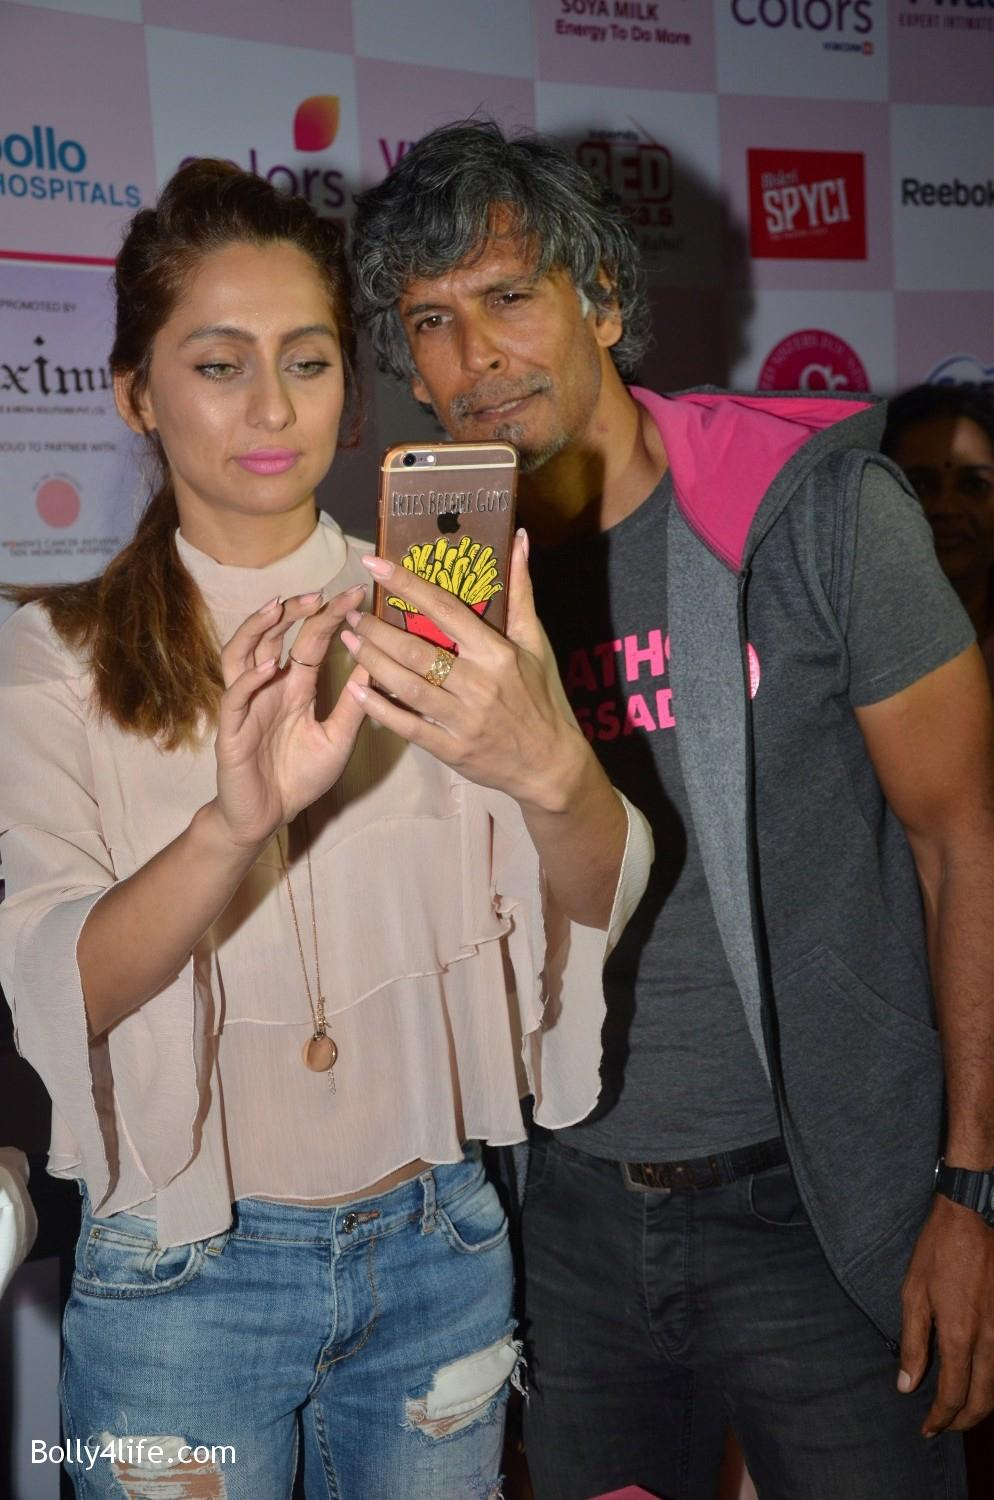 Raj-Nayak-CEO-Colors-RJ-Malishka-Bollywood-actor-Anusha-Dandekar-and-model-Milind-Soman-during-the-announcement-of-Fifth-Edition-of-Pinkathon-7.jpg